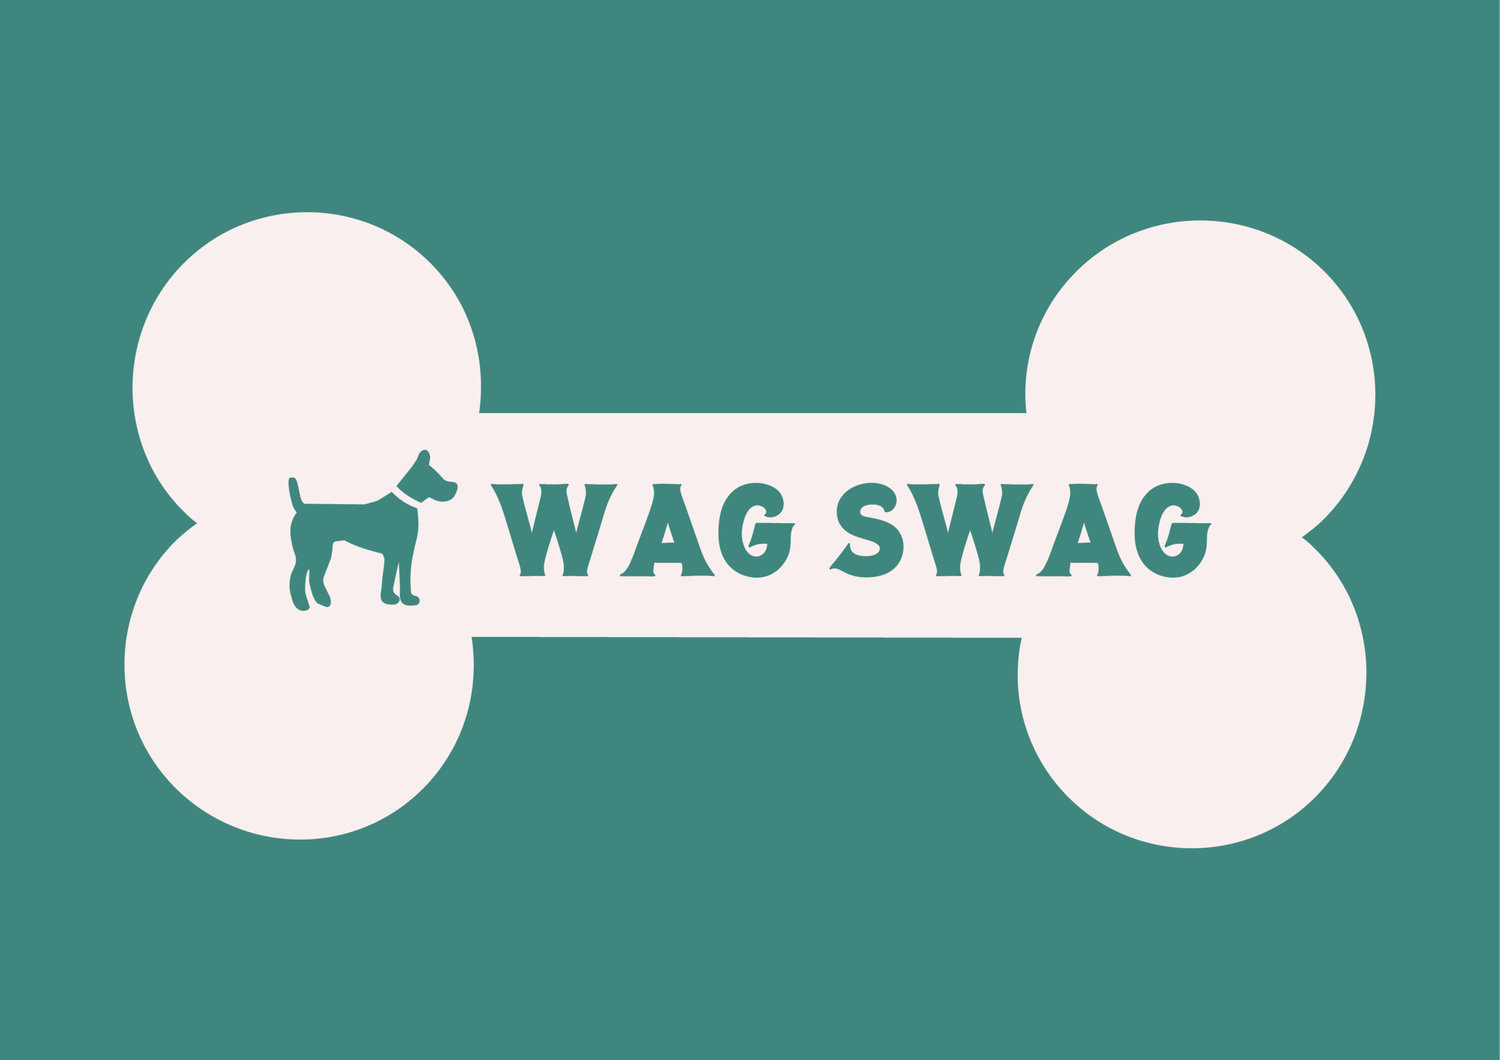 Wag Swag